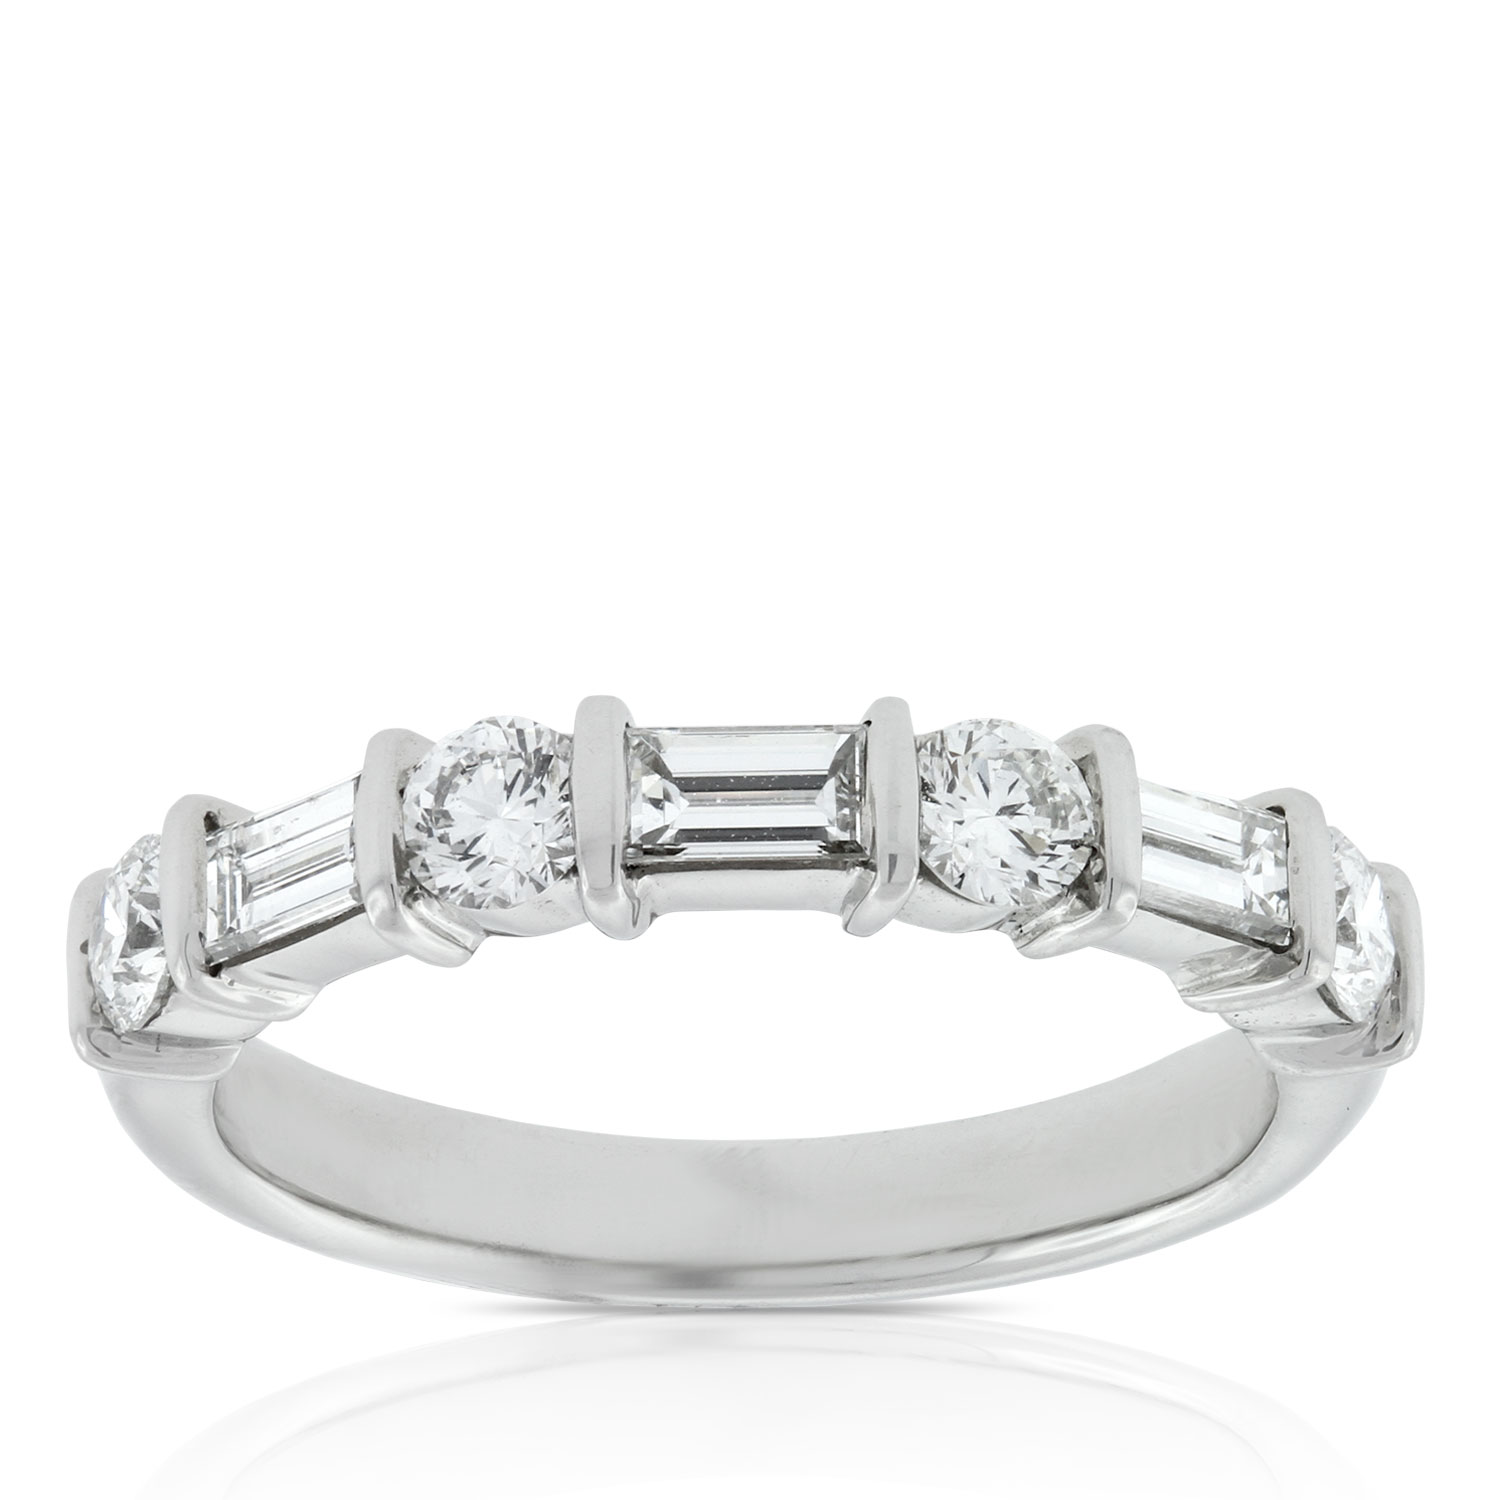 Baguette Amp Round Diamond Ring 1 Carat In Platinum Ben